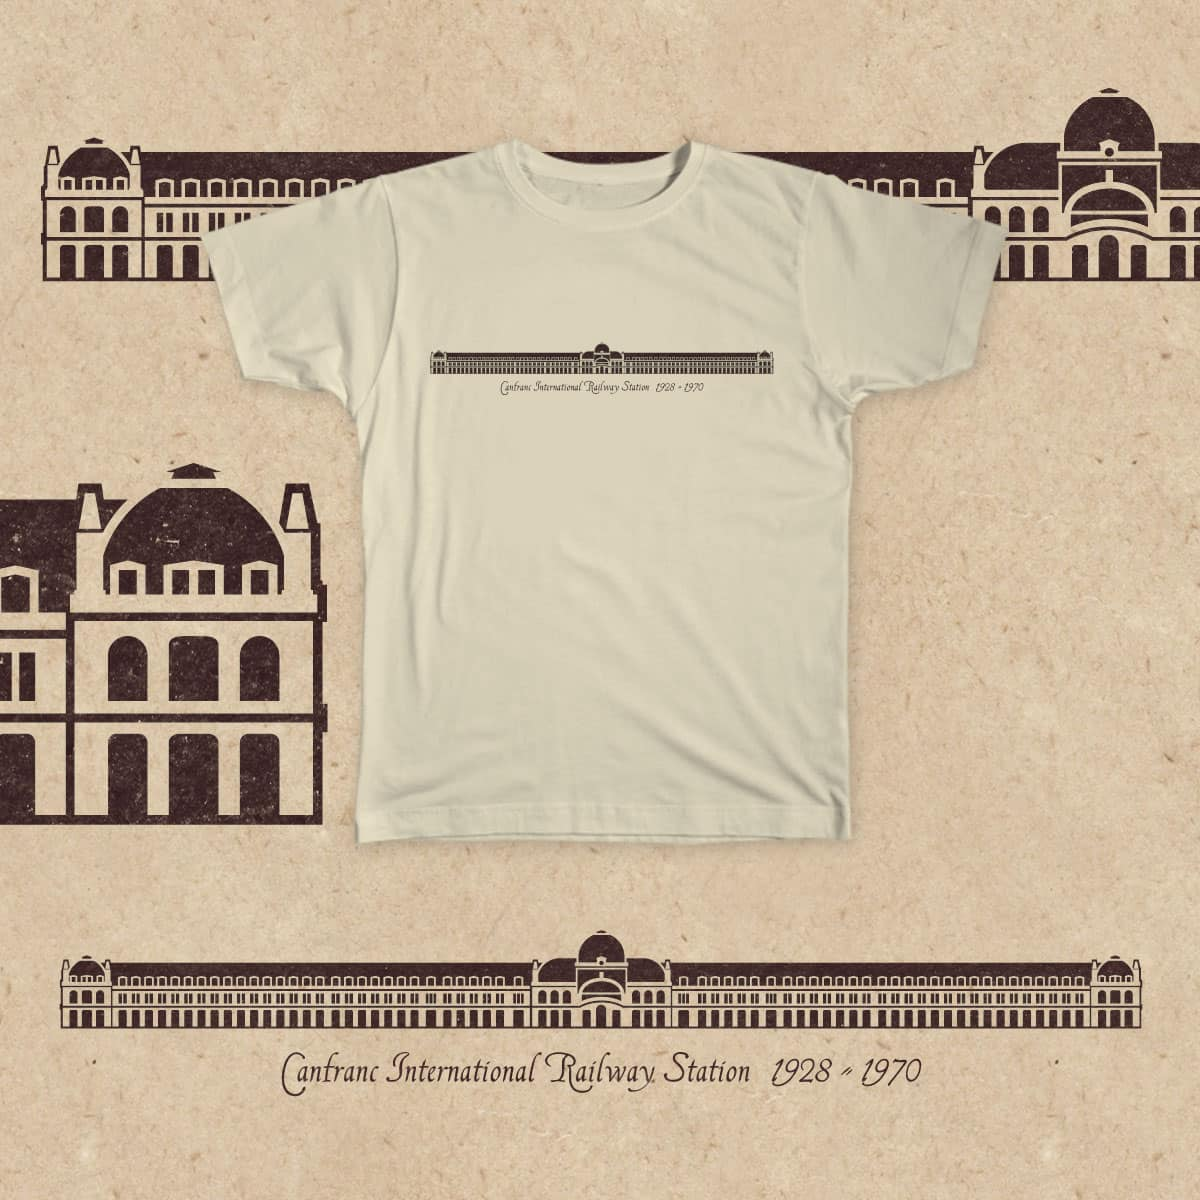 Canfranc International Railway Station by ikado on Threadless